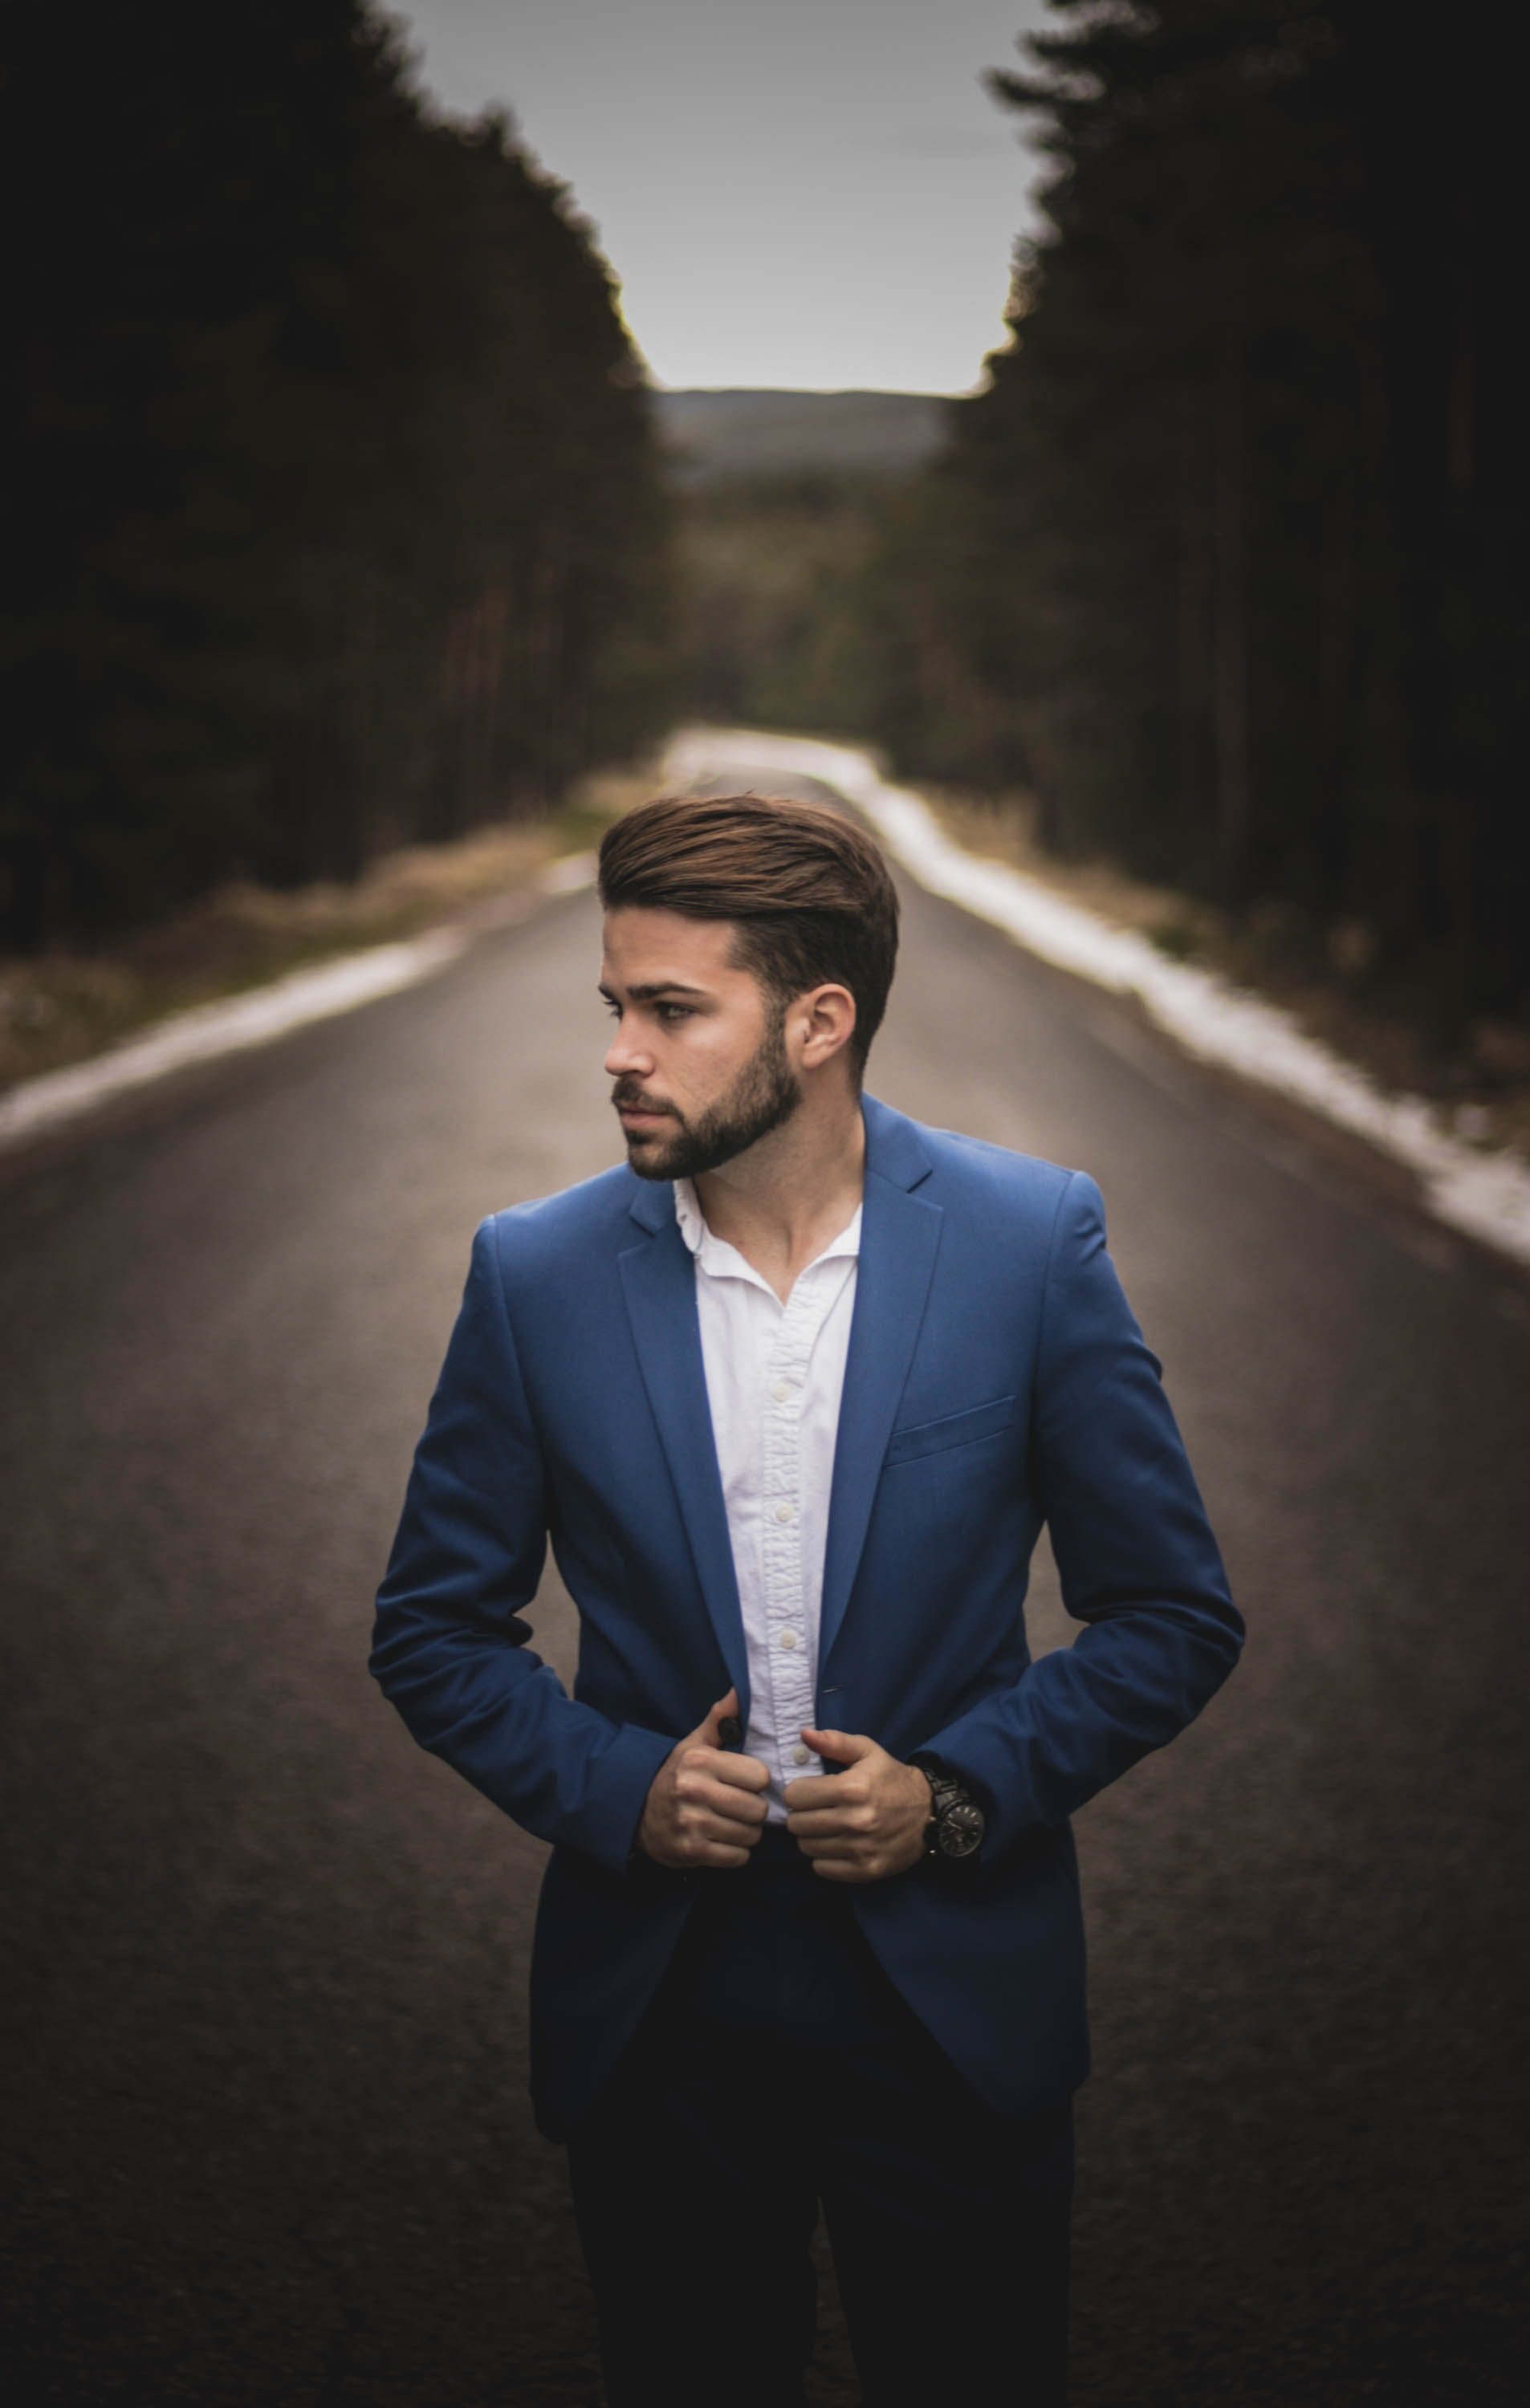 man on road wearing blue suit jacket